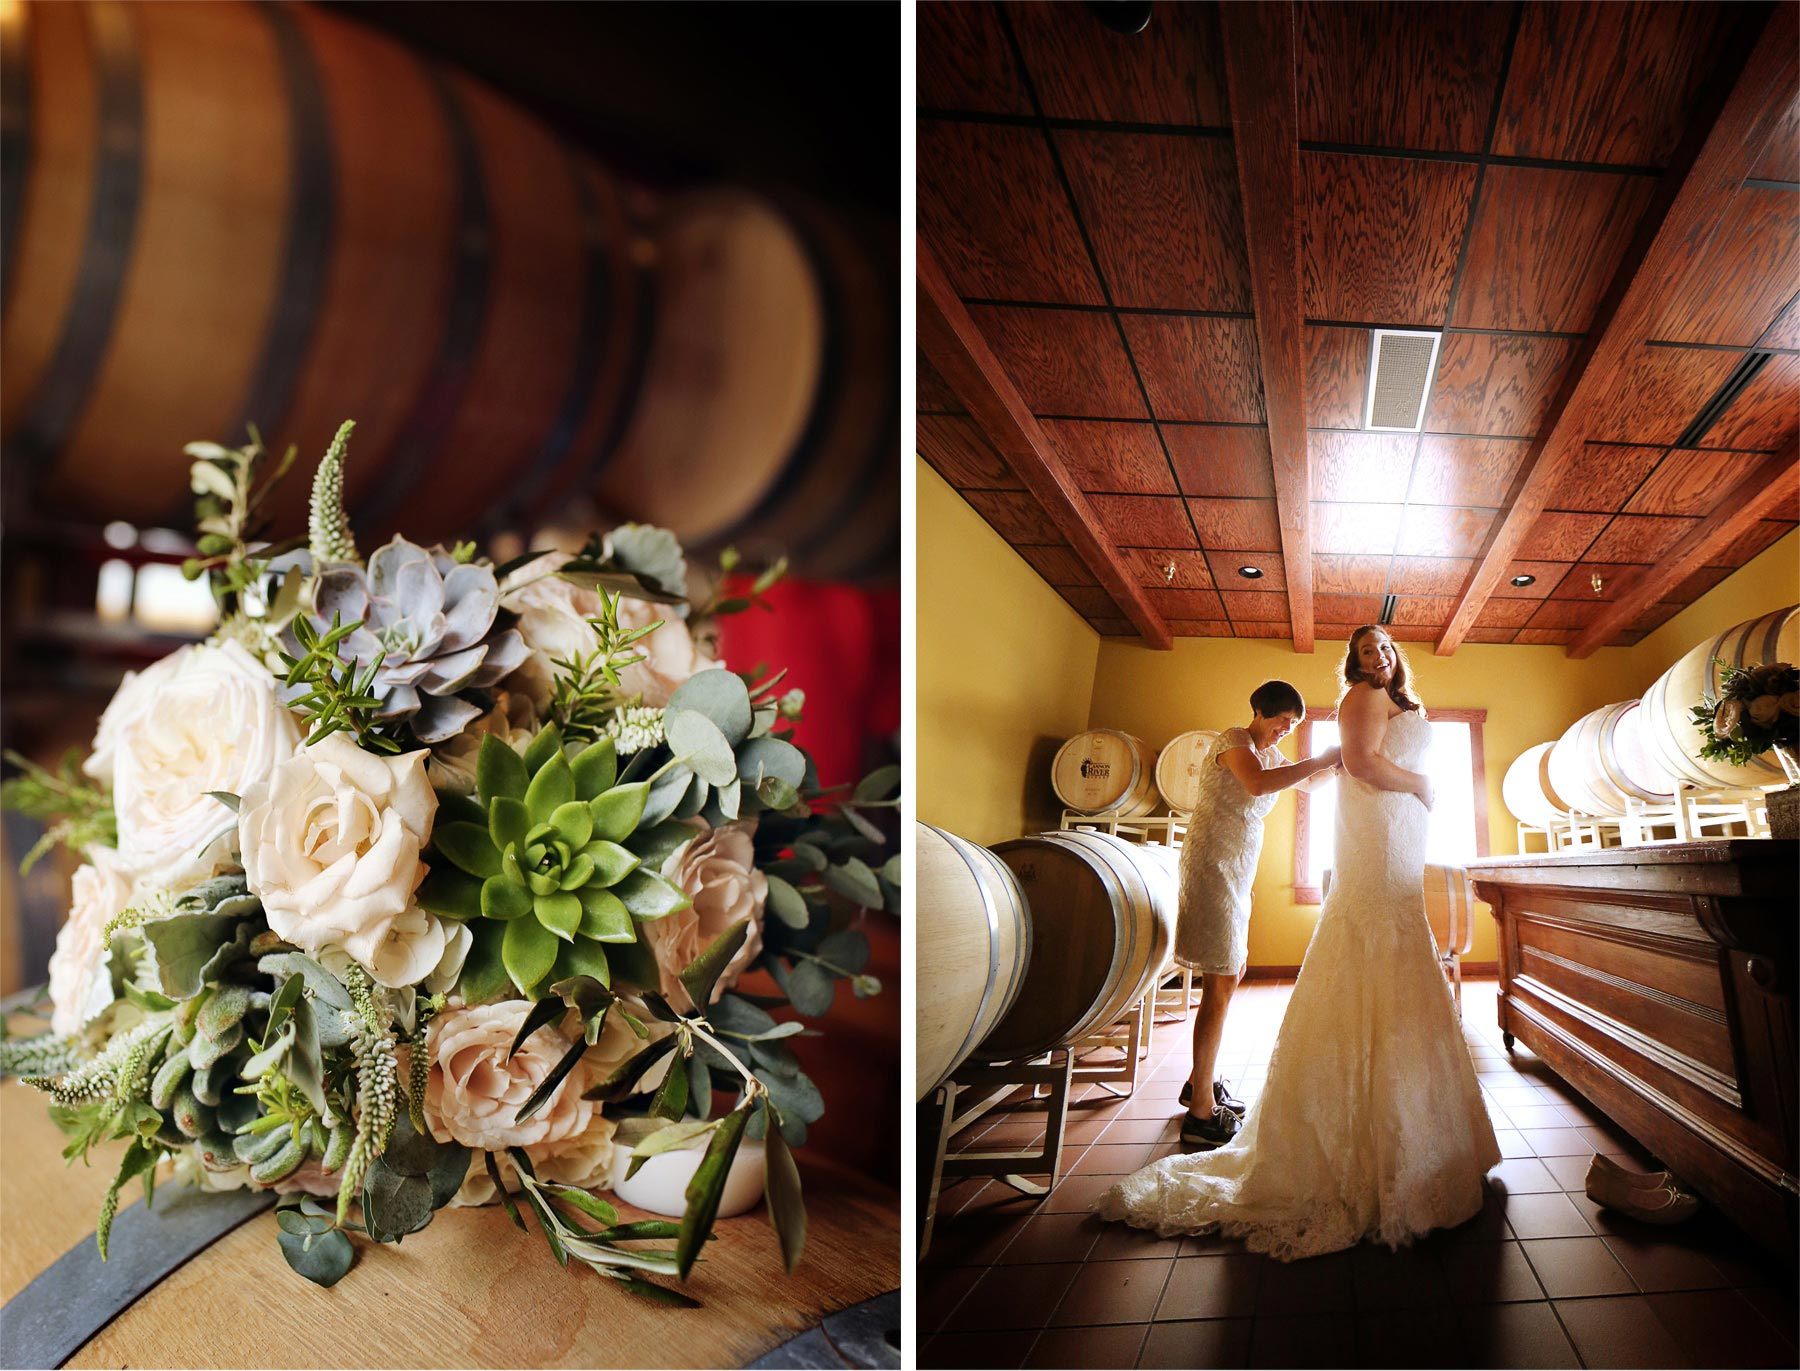 01-Cannon-Falls-Minnesota-Wedding-Photographer-by-Andrew-Vick-Photography-Summer-River-Winery-Getting-Ready-Bride-Mother-Dress-Flowers-Wine-Barrels-Becca-and-Donal.jpg